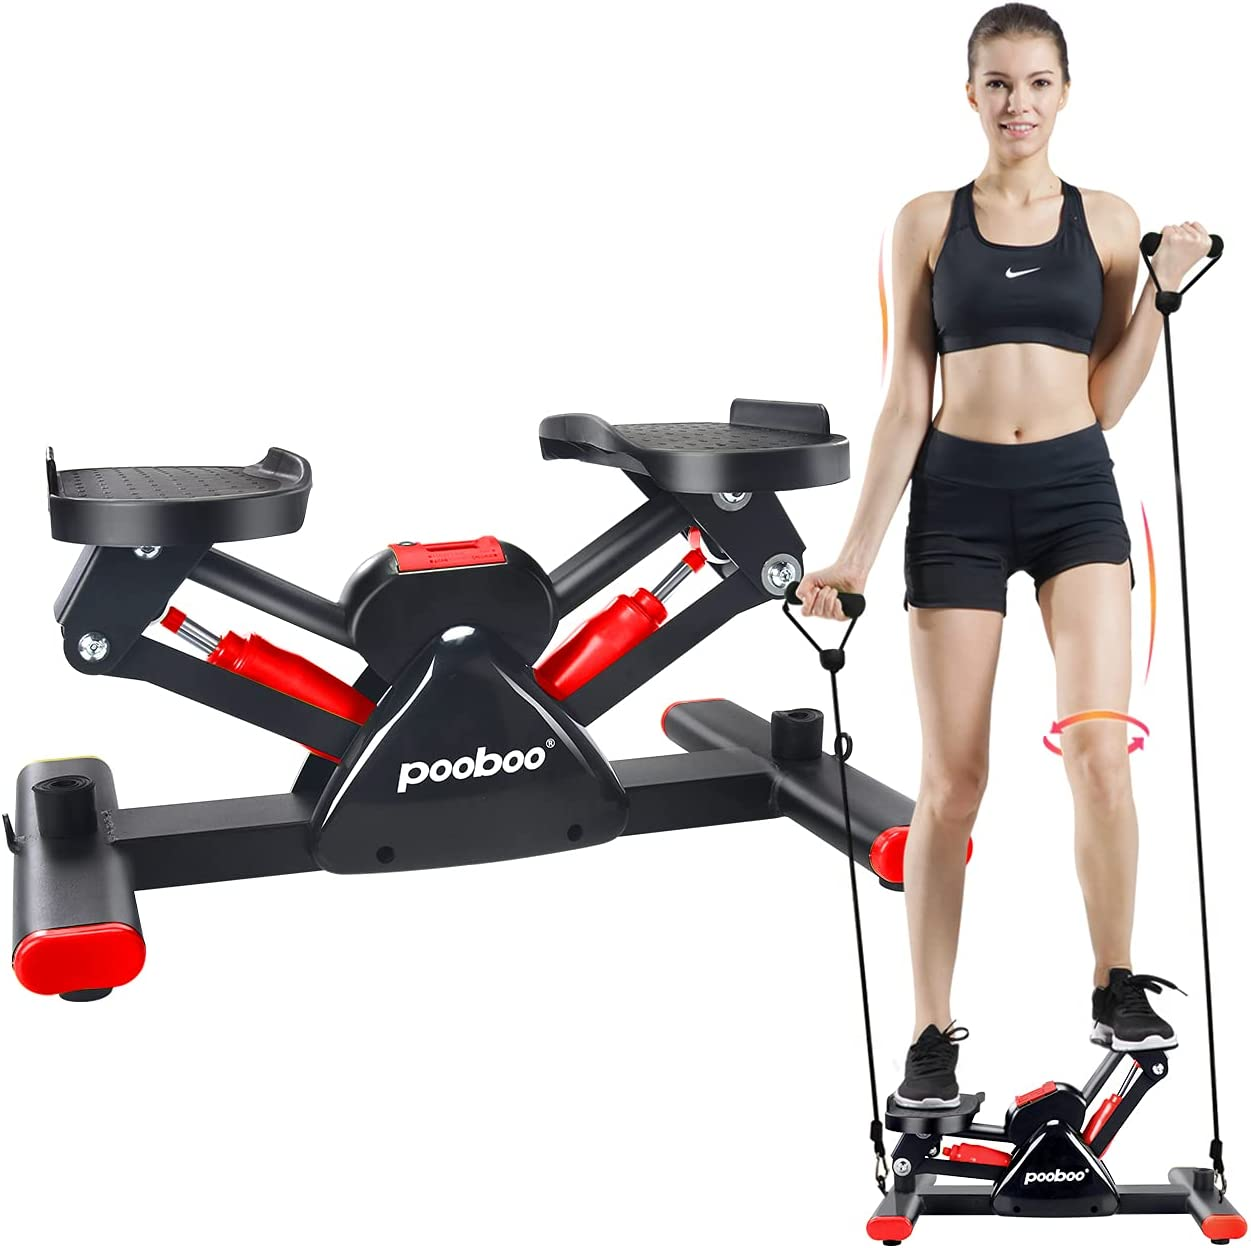 L NOW Adjustable Mini Stair Stepper Exercise Equipment Step Machine